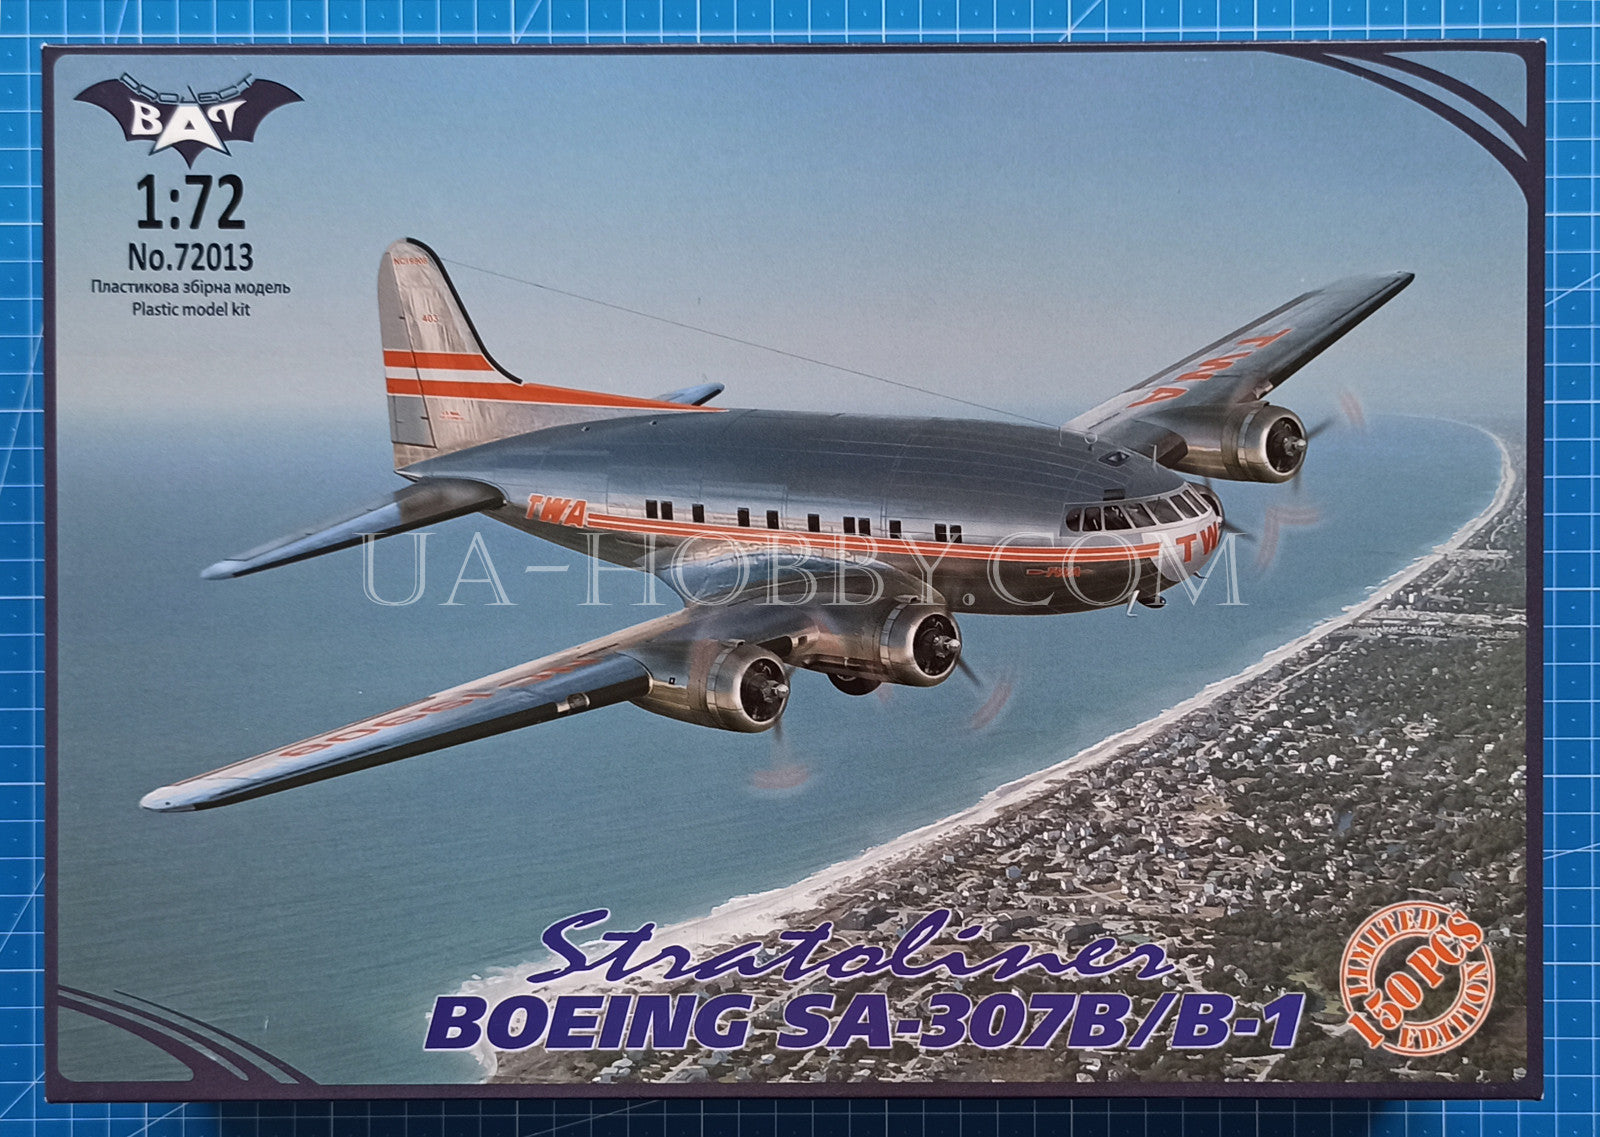 1/72 Boeing SA-307B/B-1 Stratoliner. Limited Edition, 1 of 150pcs. Bat Project 72013.